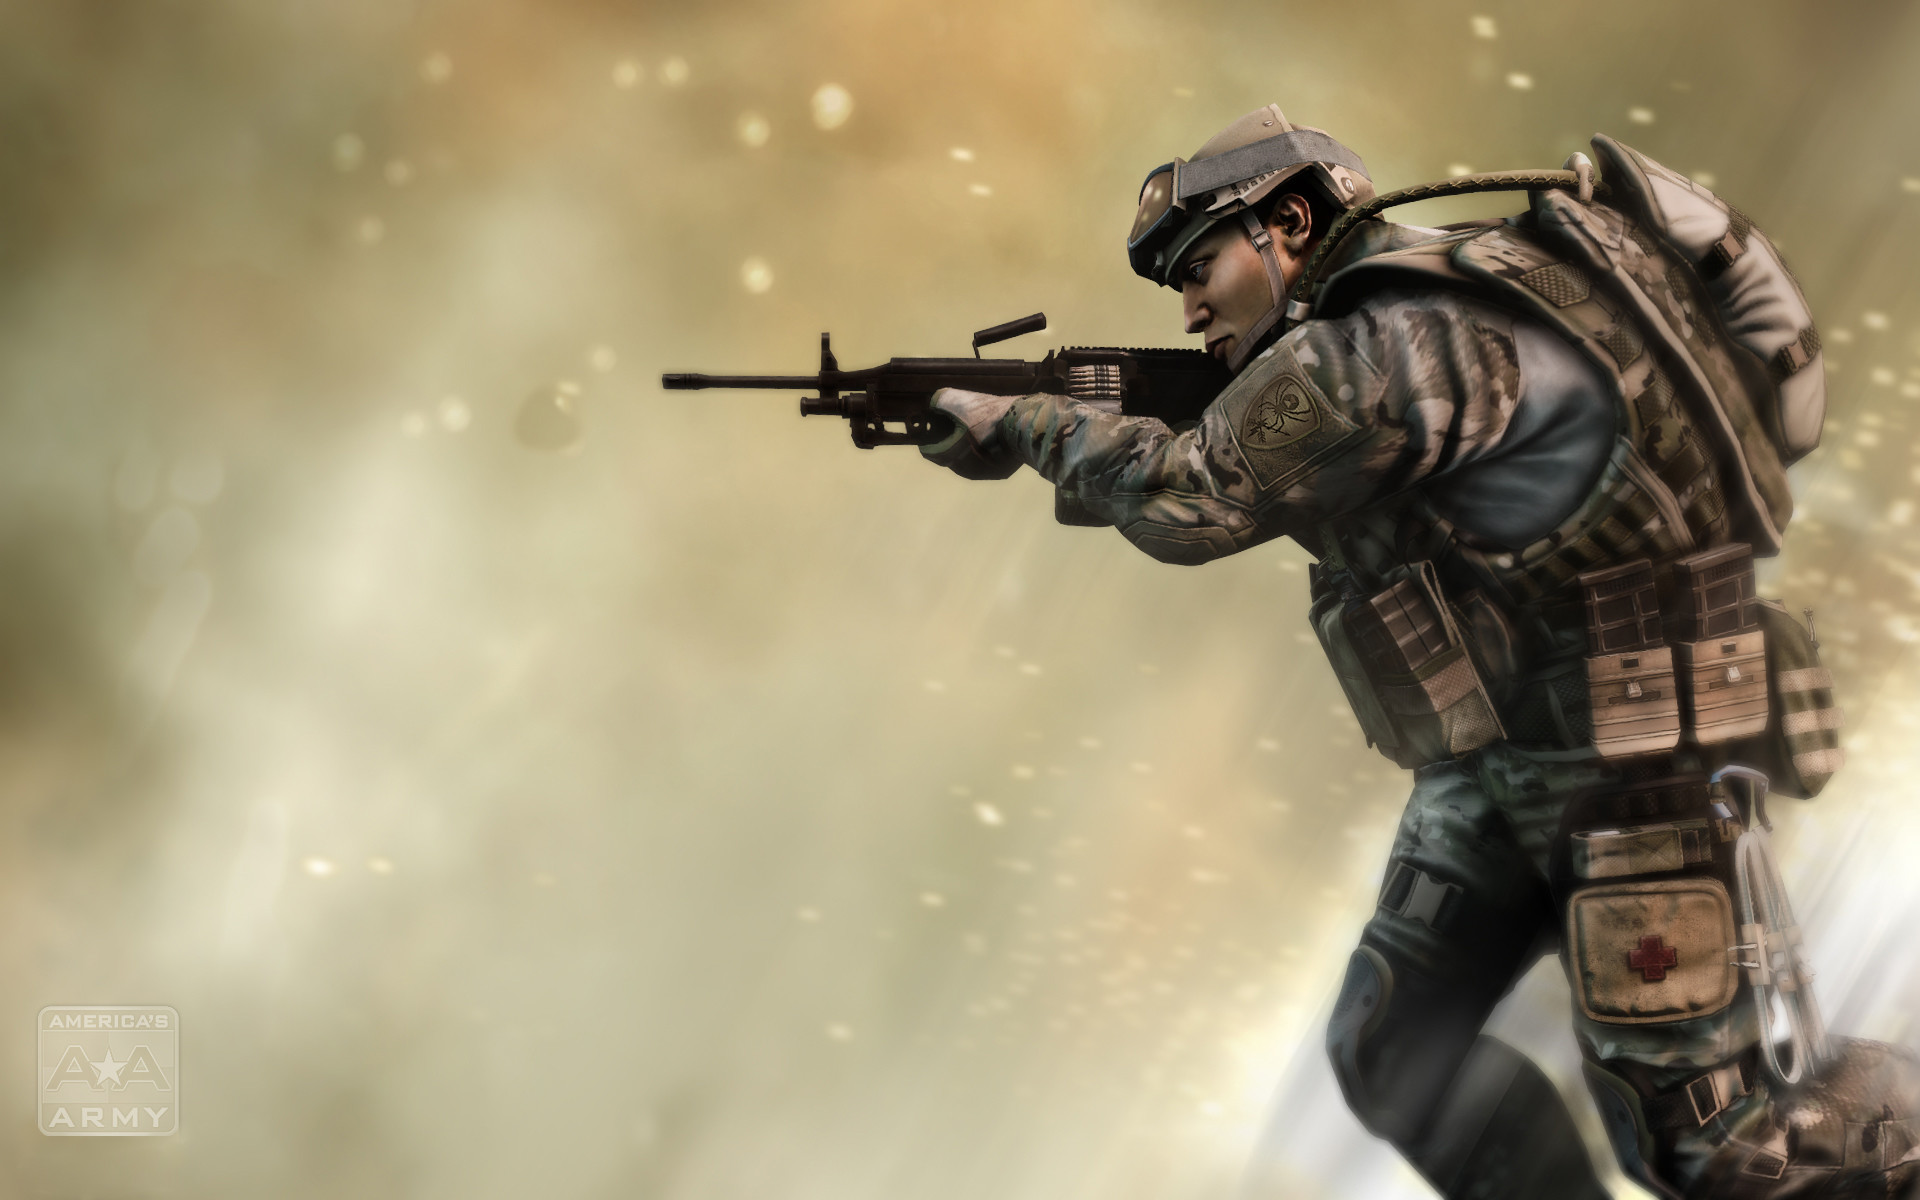 1920x1200 cool military army wallpaper games